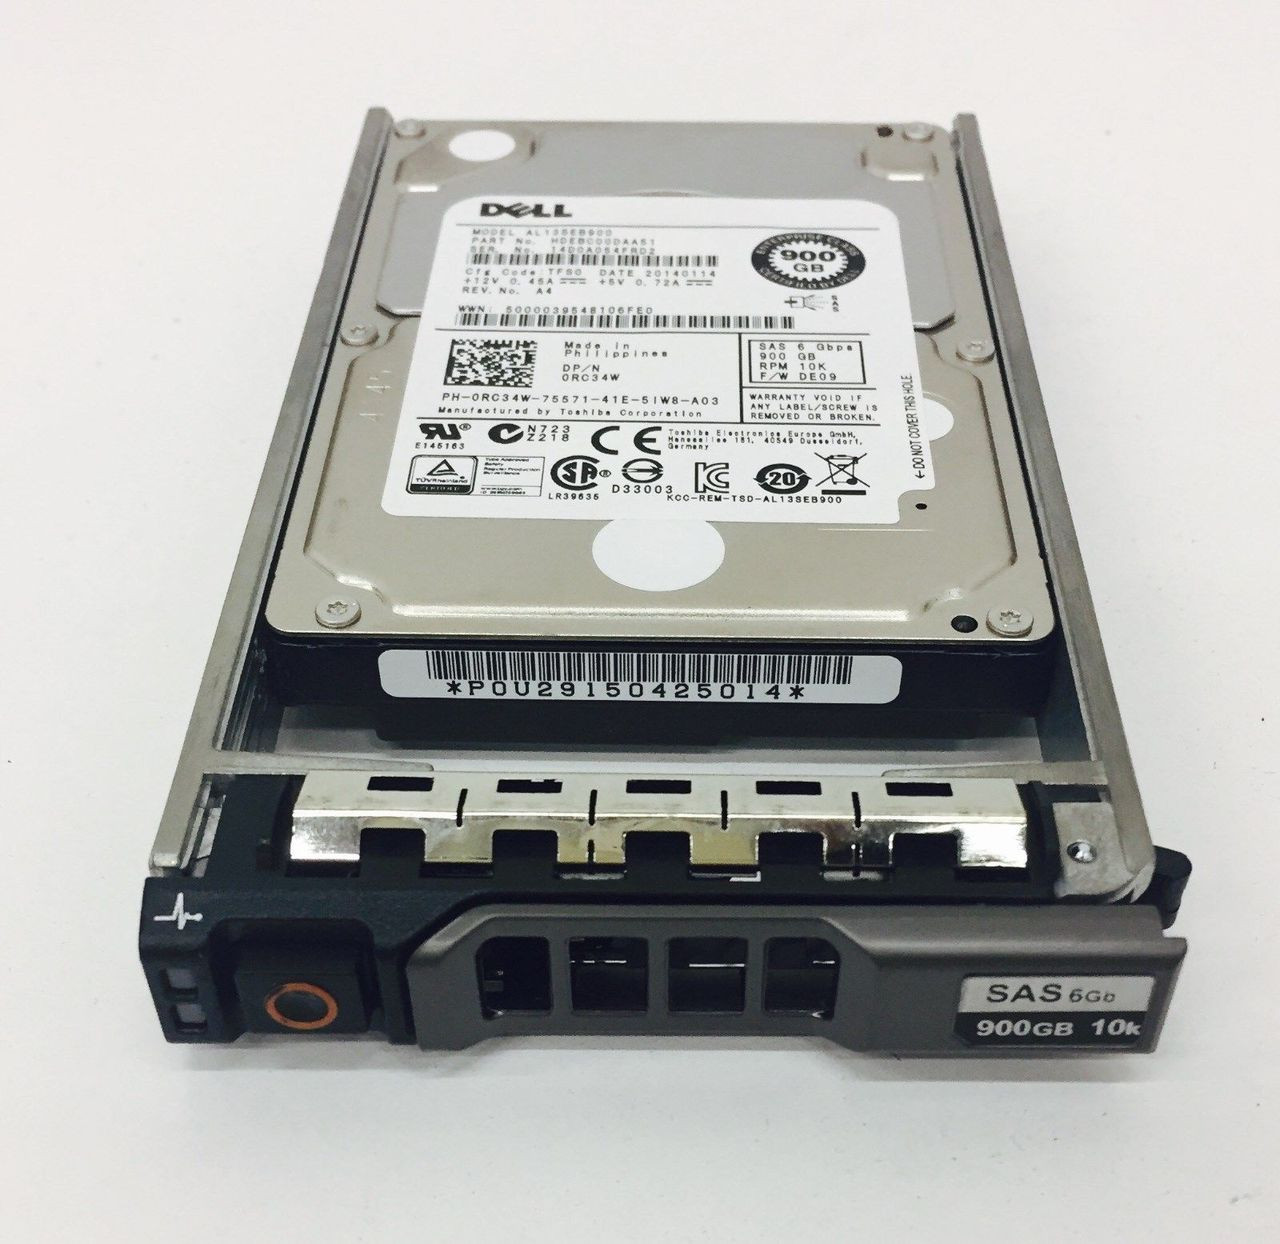 Dell RC34W 900GB SAS 2.5 10K 6GBPS HDEBC00DAA51